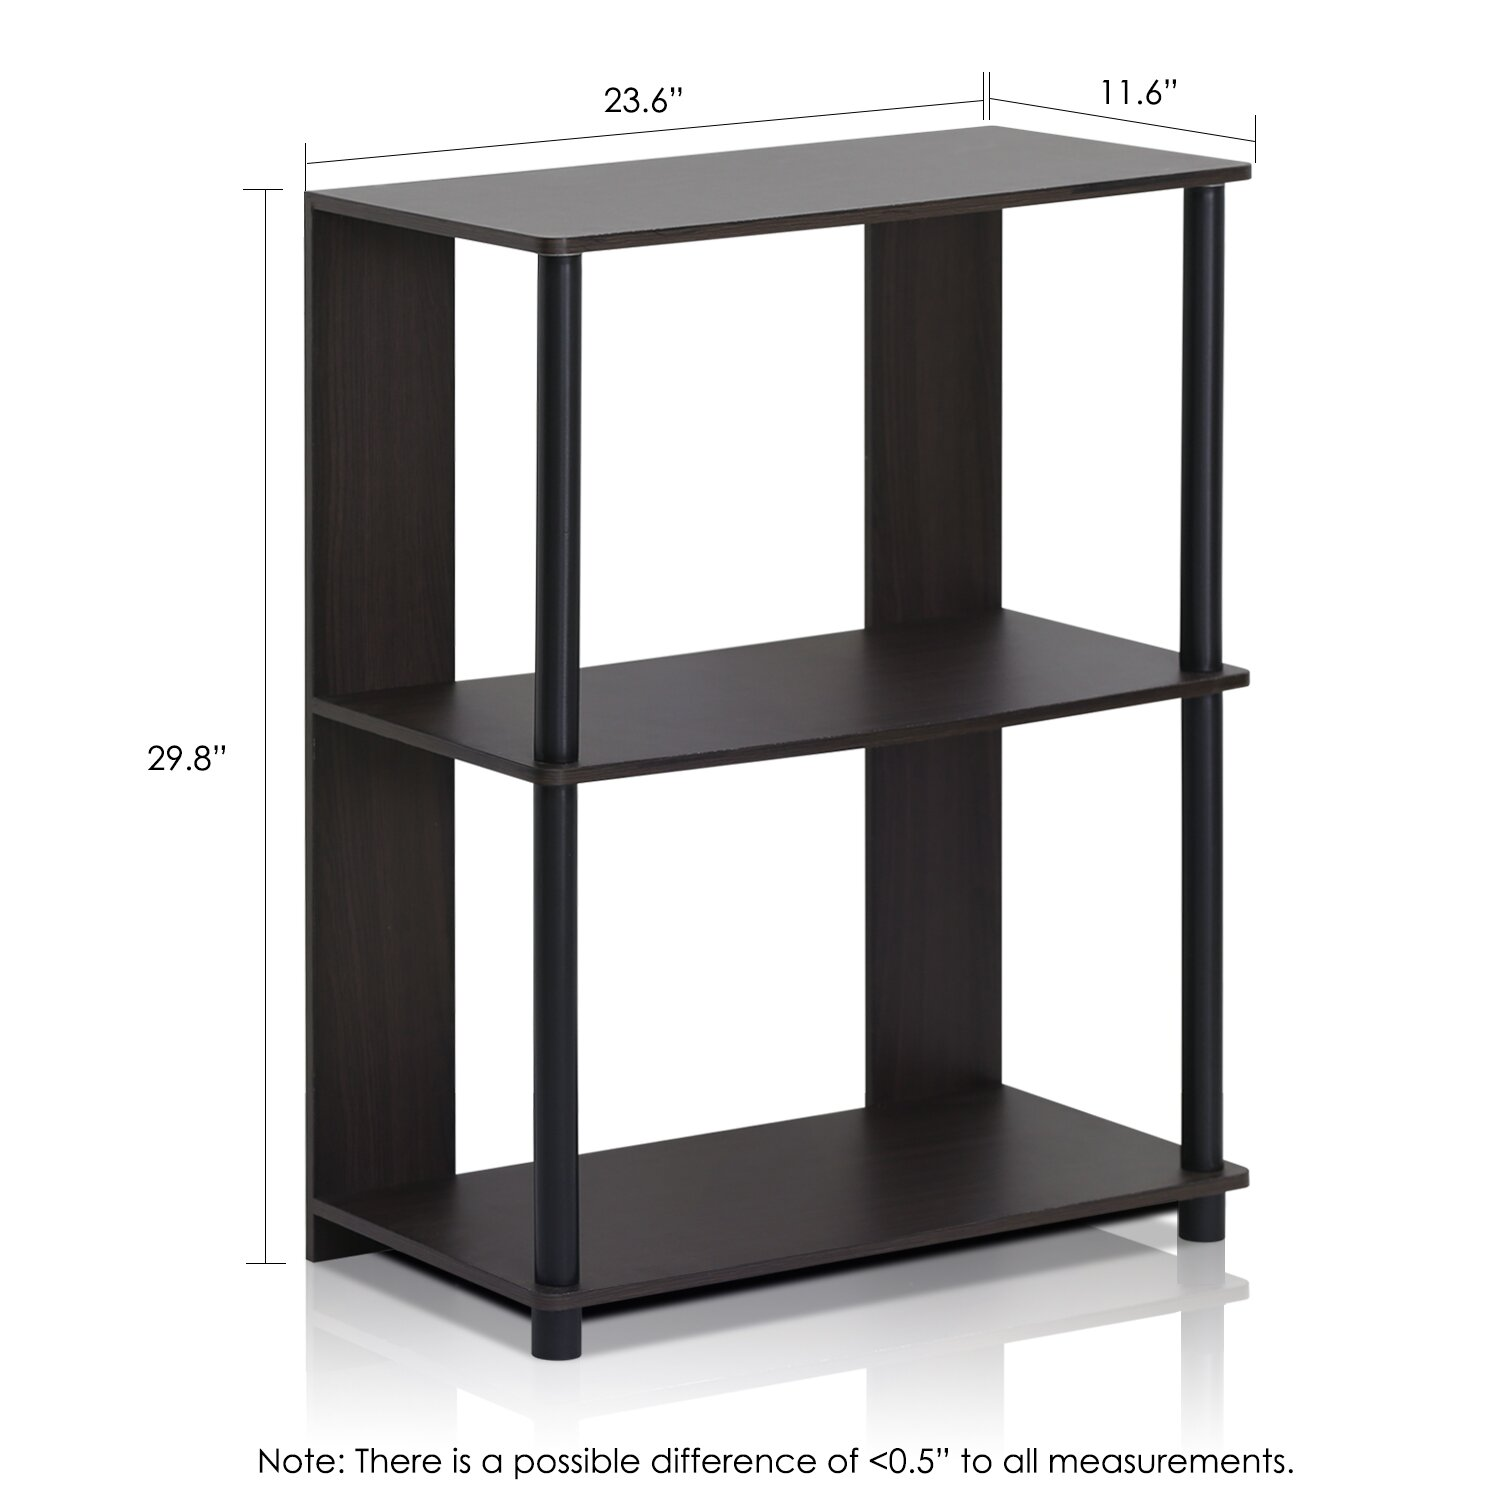 furinno jaya simple design 30 etagere bookcase reviews wayfair. Black Bedroom Furniture Sets. Home Design Ideas